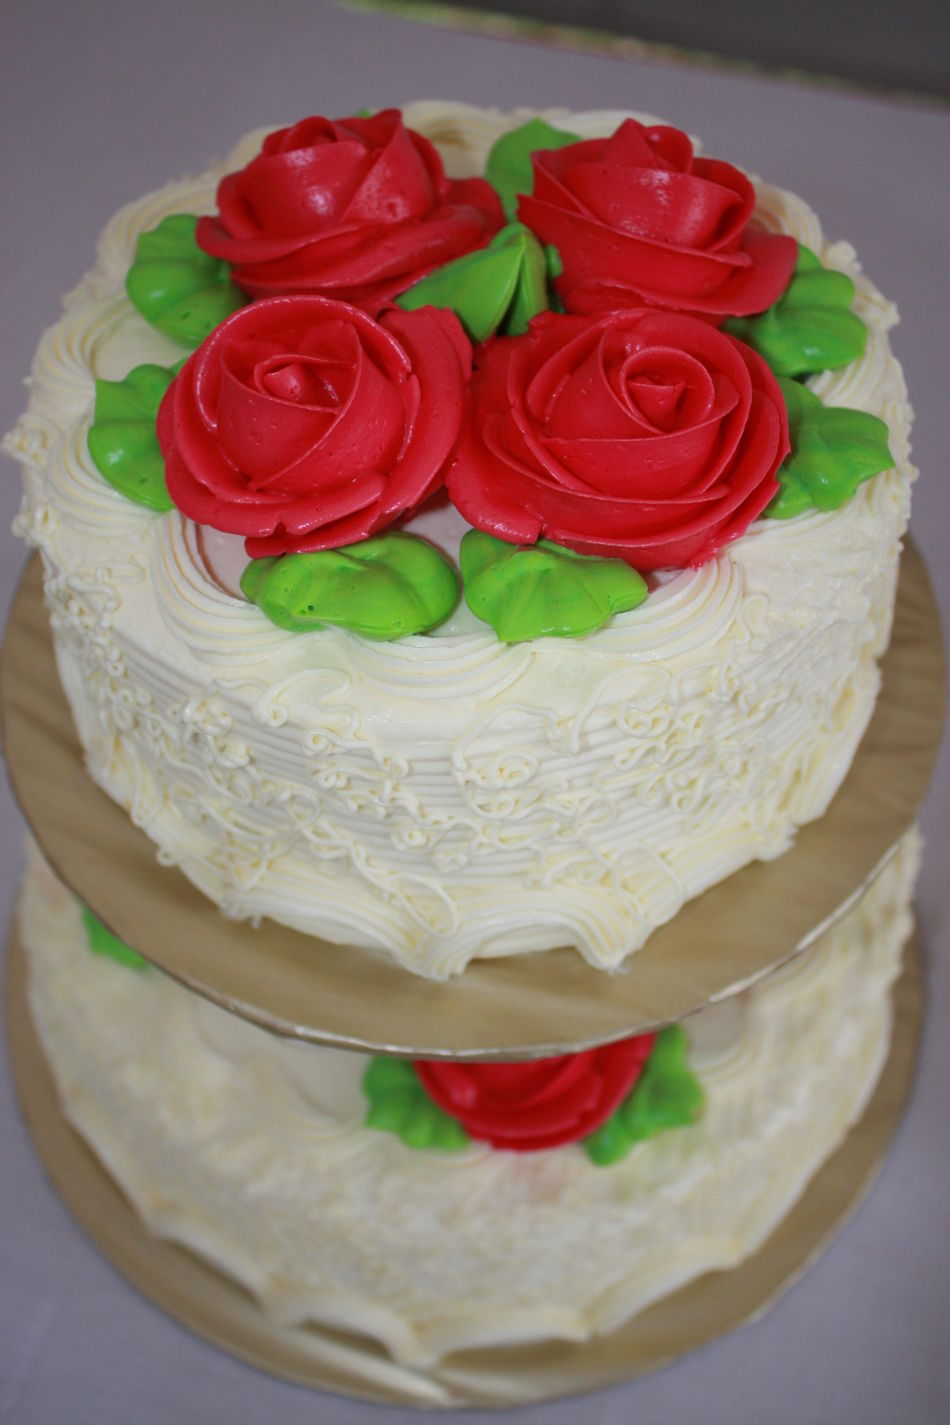 Cake Close-up Day Dessert Dessert Topping Flower Food Food And Drink Freshness Indoors  Indulgence No People Ready-to-eat Rose - Flower Sweet Food Temptation Unhealthy Eating Wedding Cake